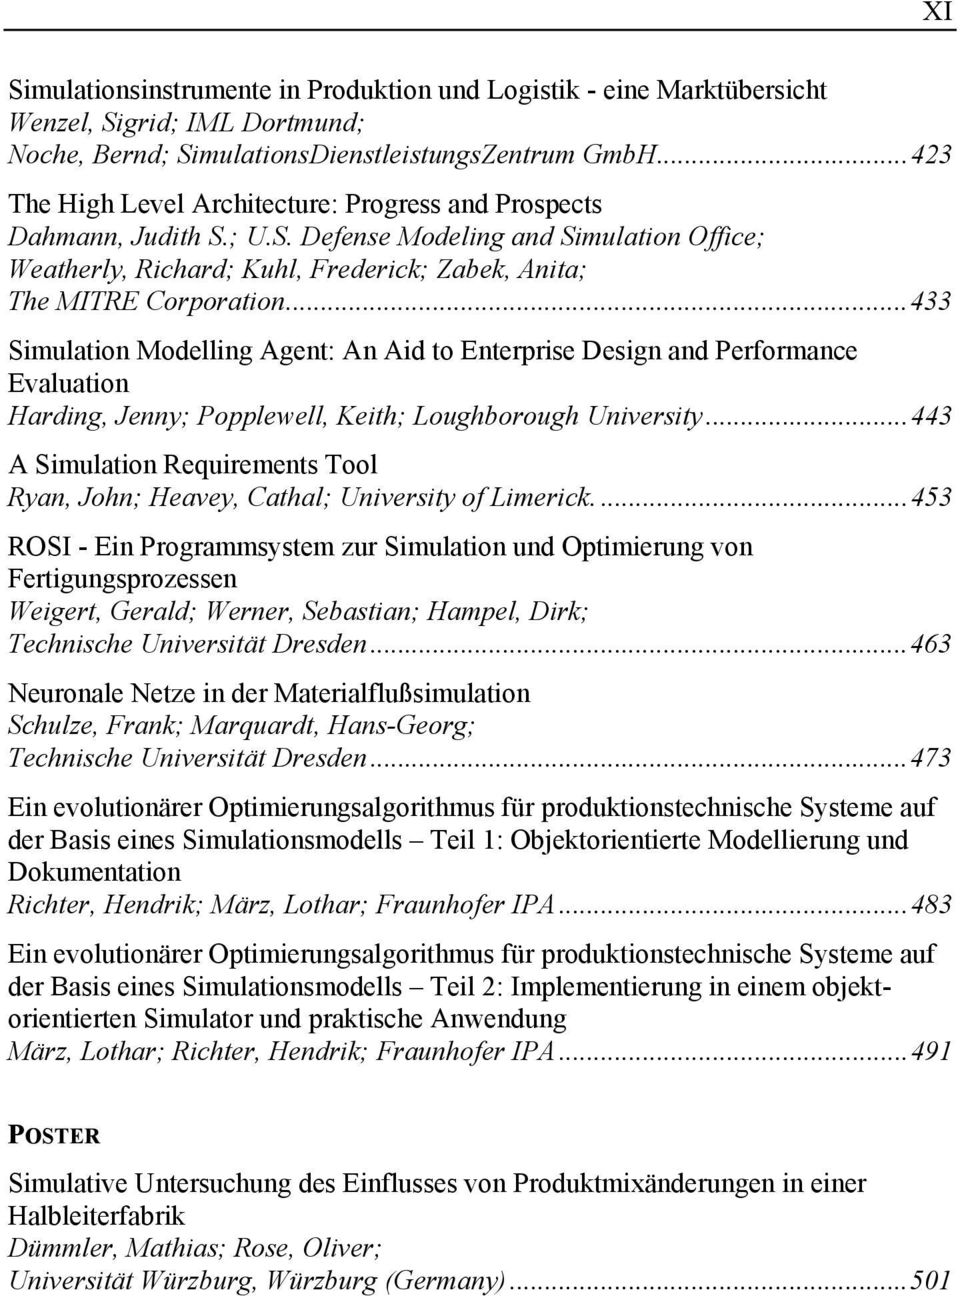 ..433 Simulation Modelling Agent: An Aid to Enterprise Design and Performance Evaluation Harding, Jenny; Popplewell, Keith; Loughborough University.